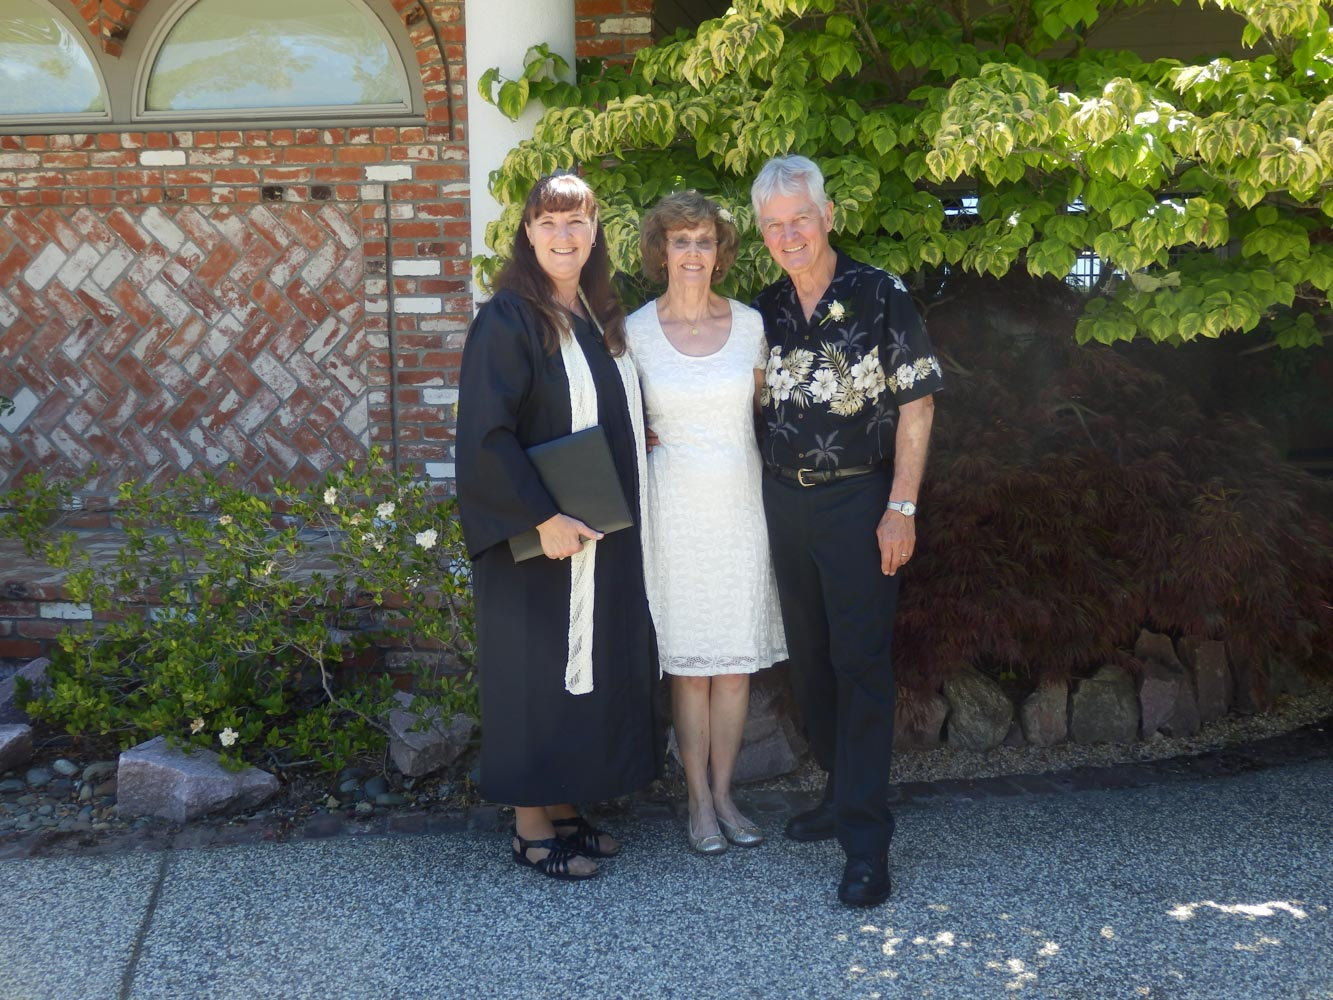 Minister, bride and groom standing near brick wall at home wedding